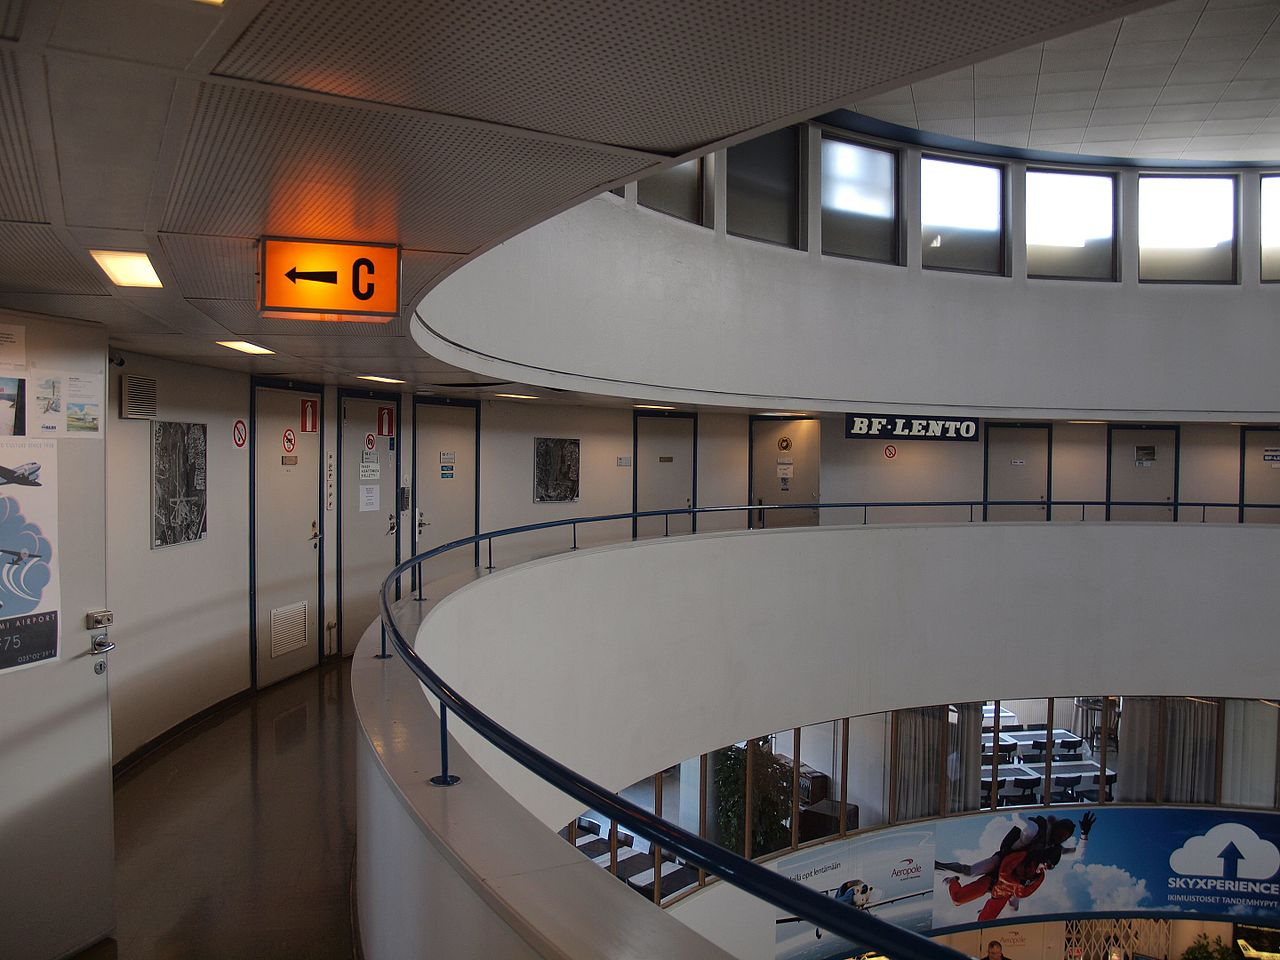 38Interior_of_Helsinki-Malmi_Airport_third_floor.jpg